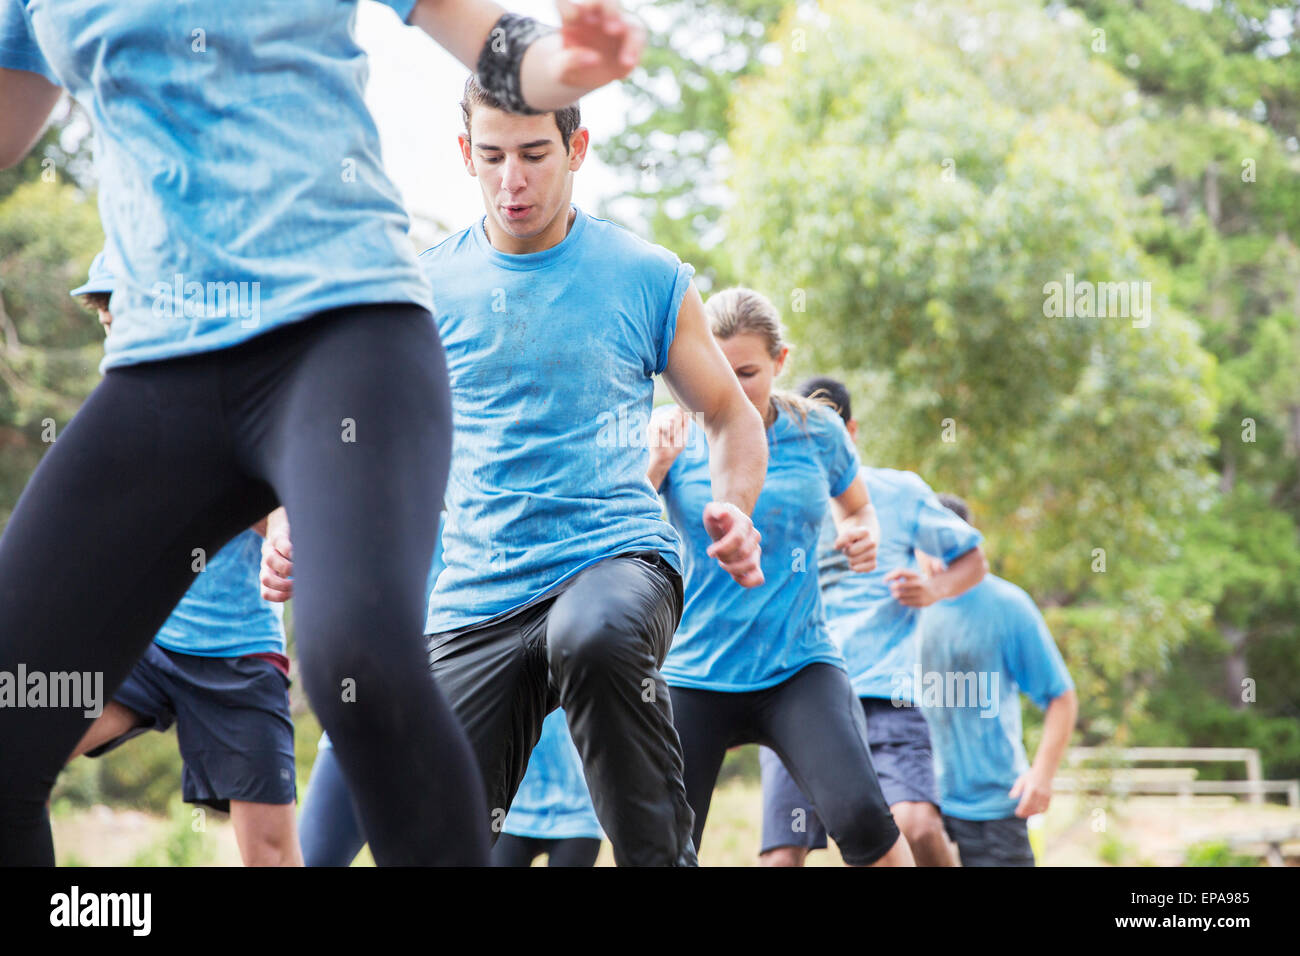 determination man boot camp obstacle course - Stock Image